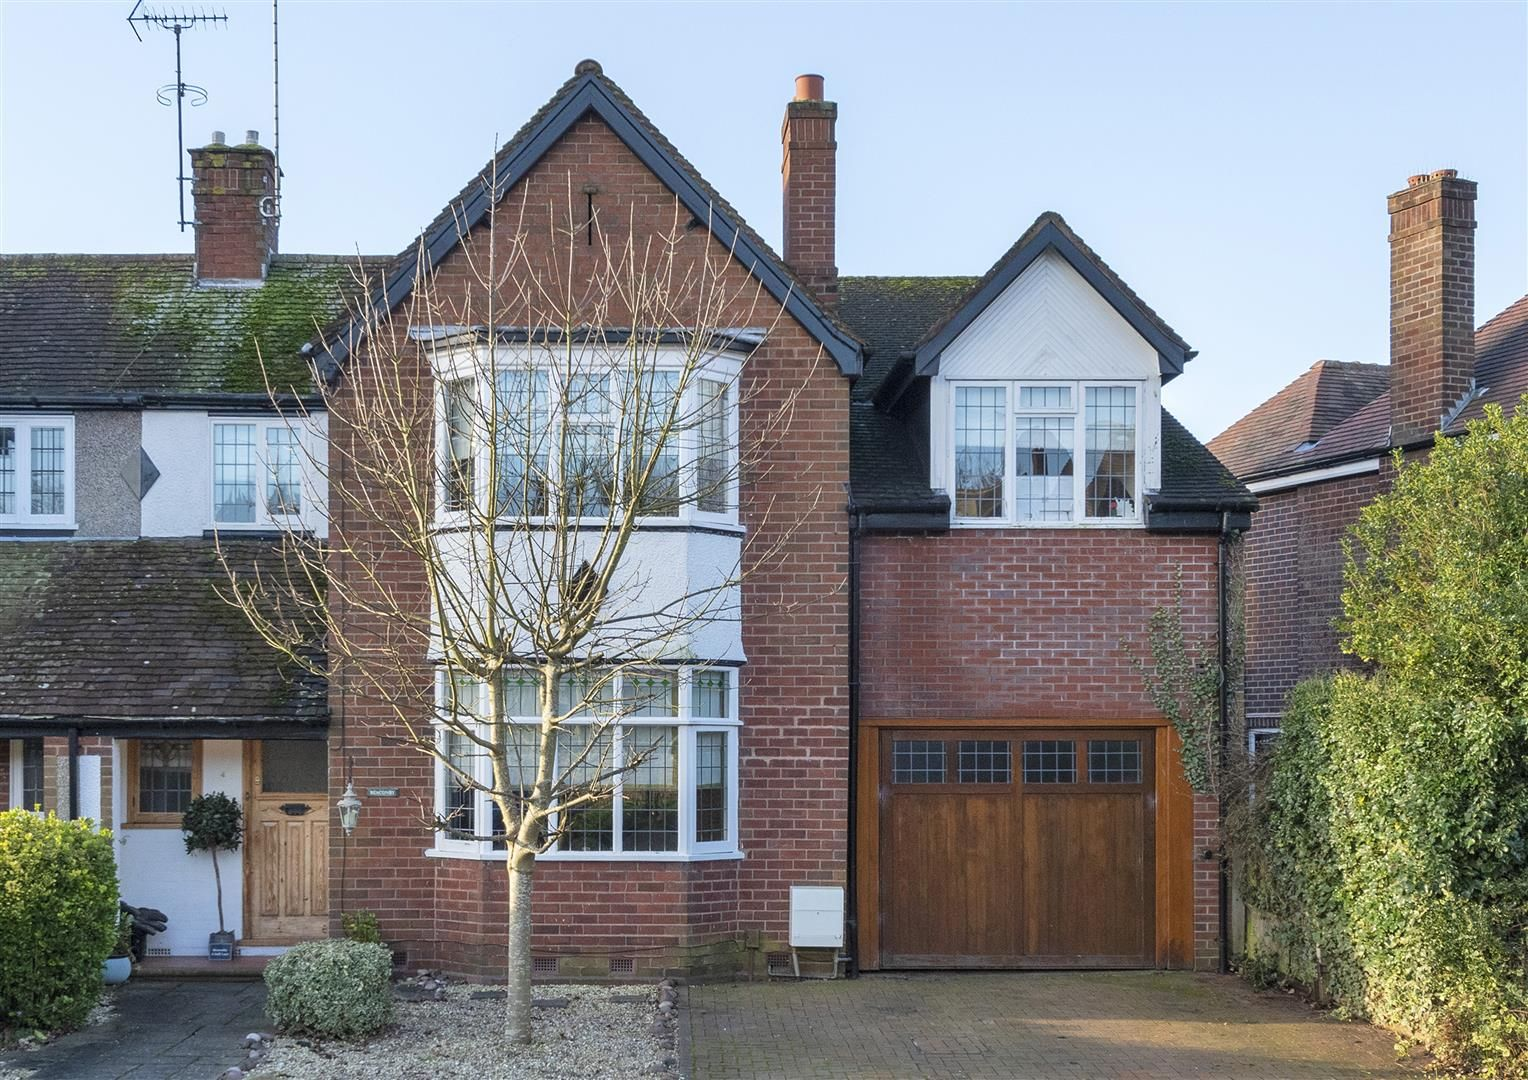 4 bed house for sale in Hagley, DY9